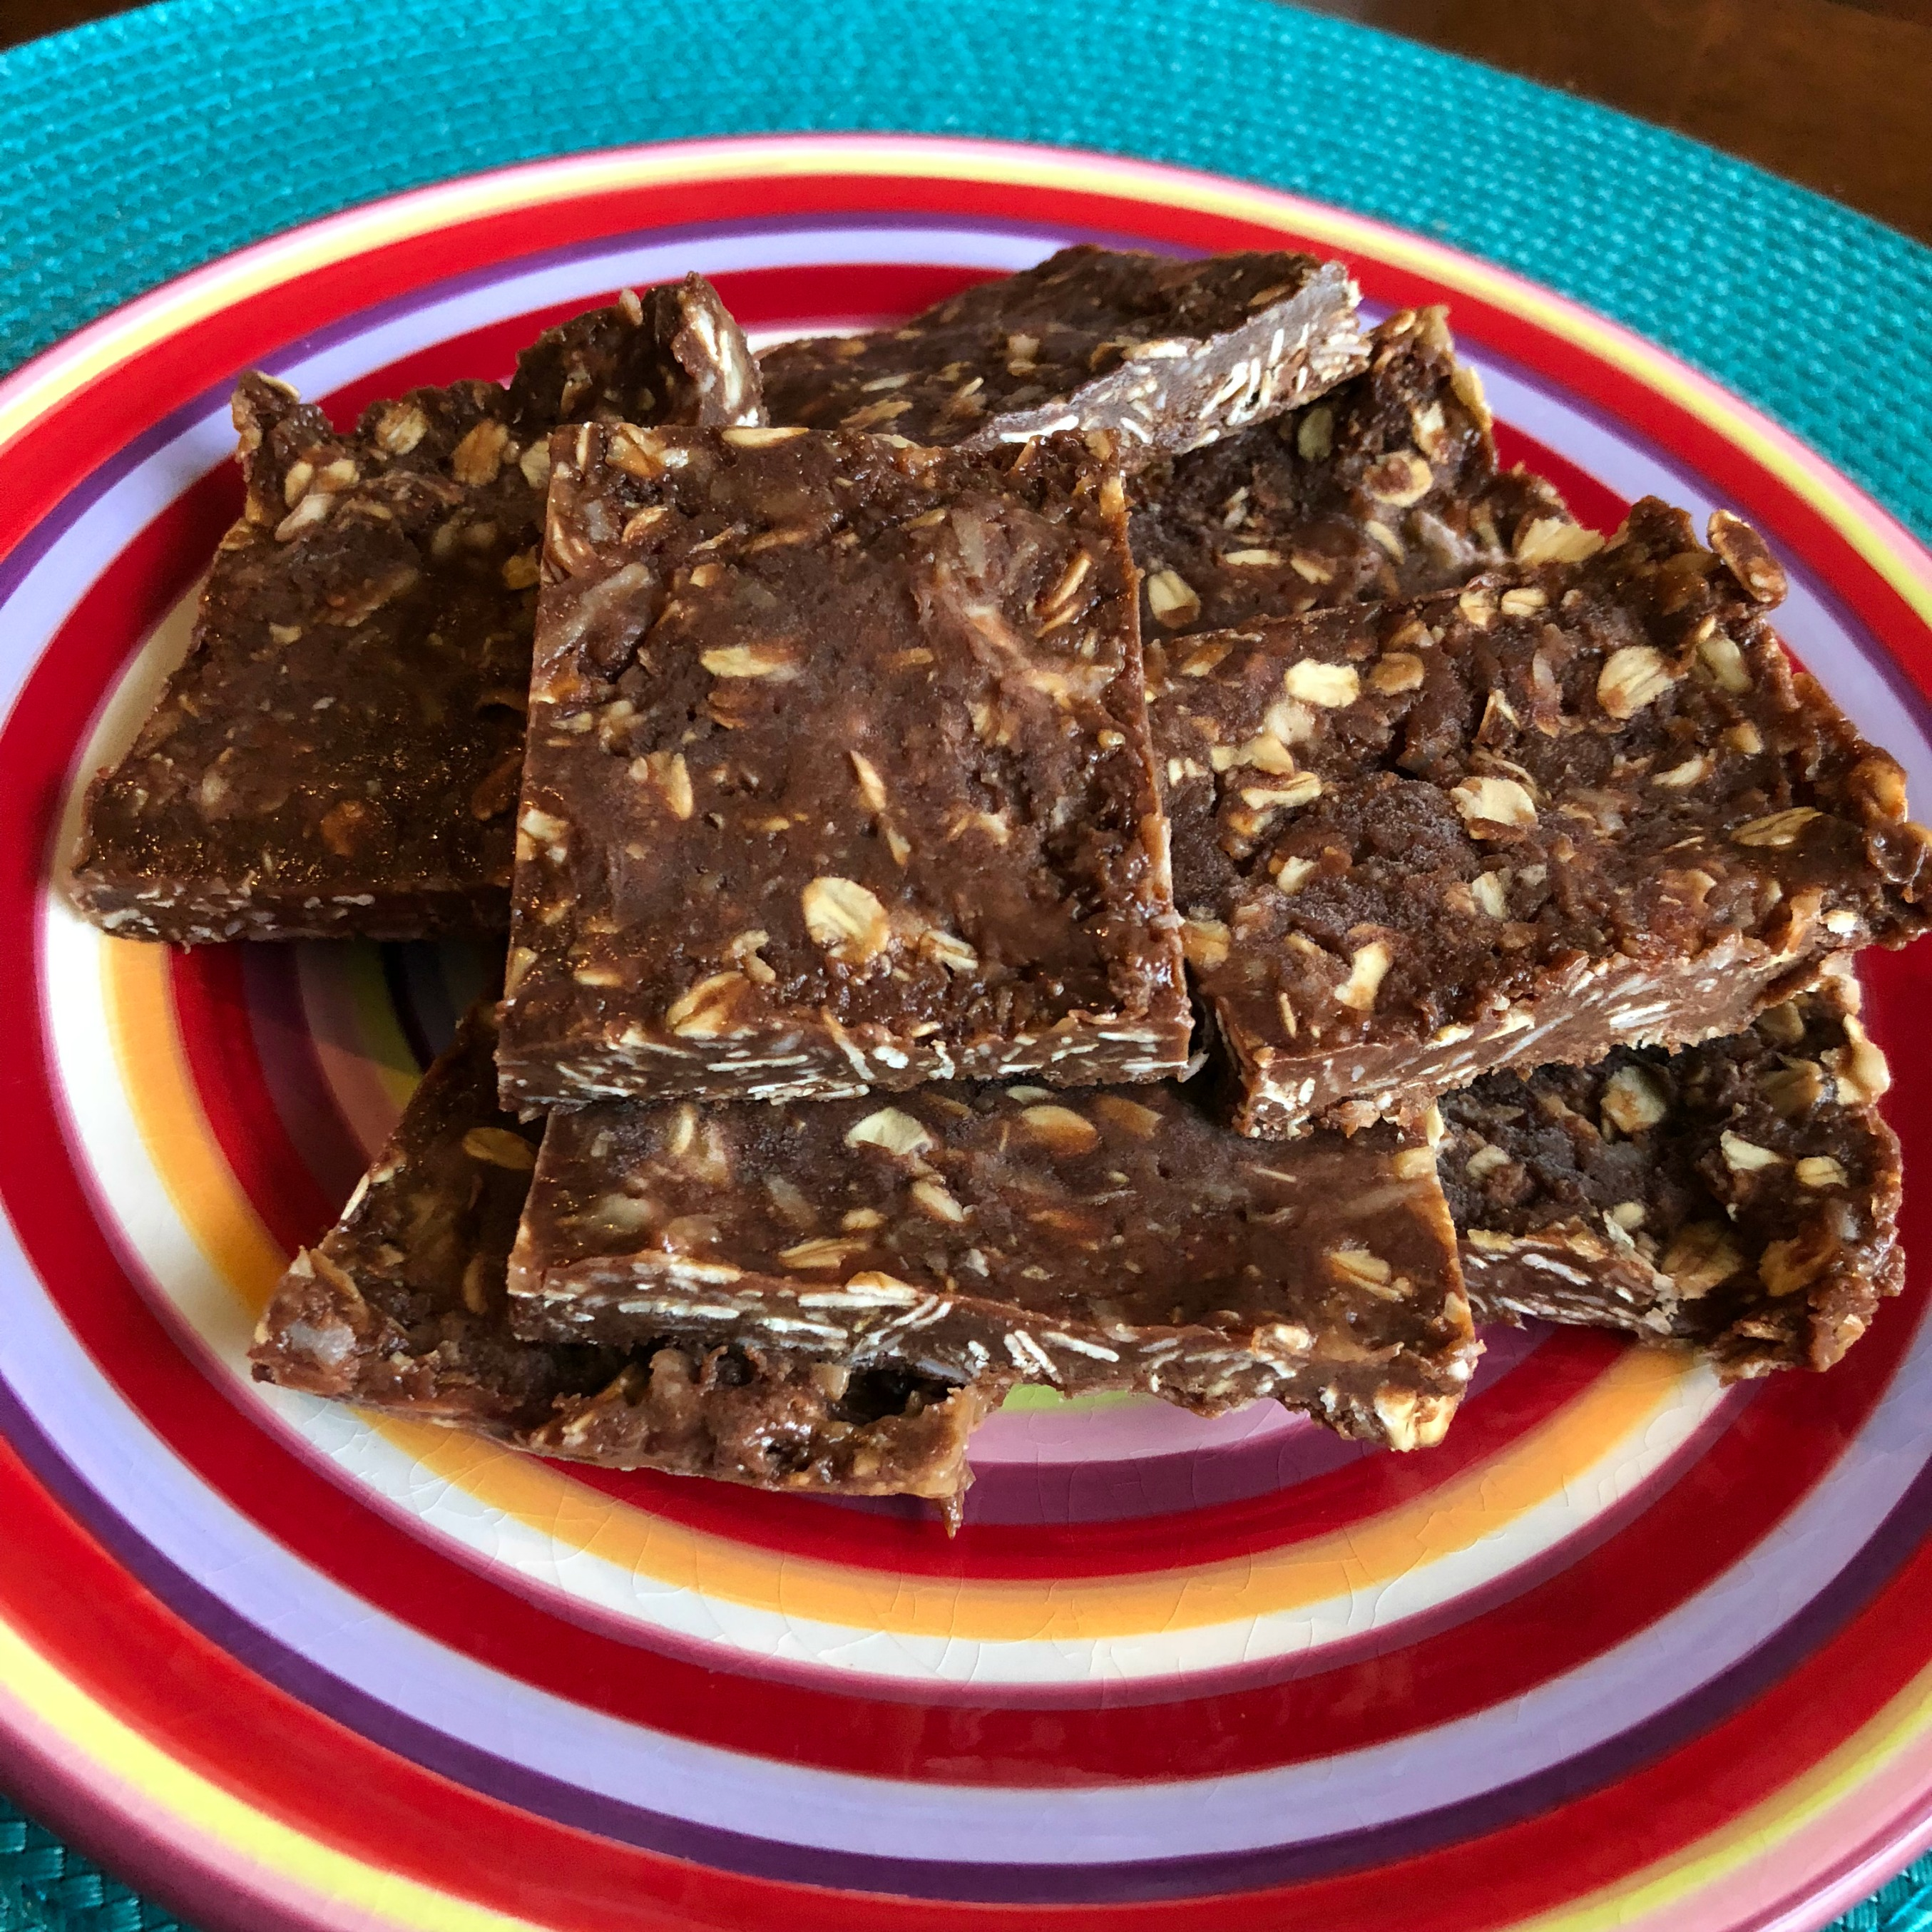 Soft and Chewy Chocolate-Banana Oat Bars